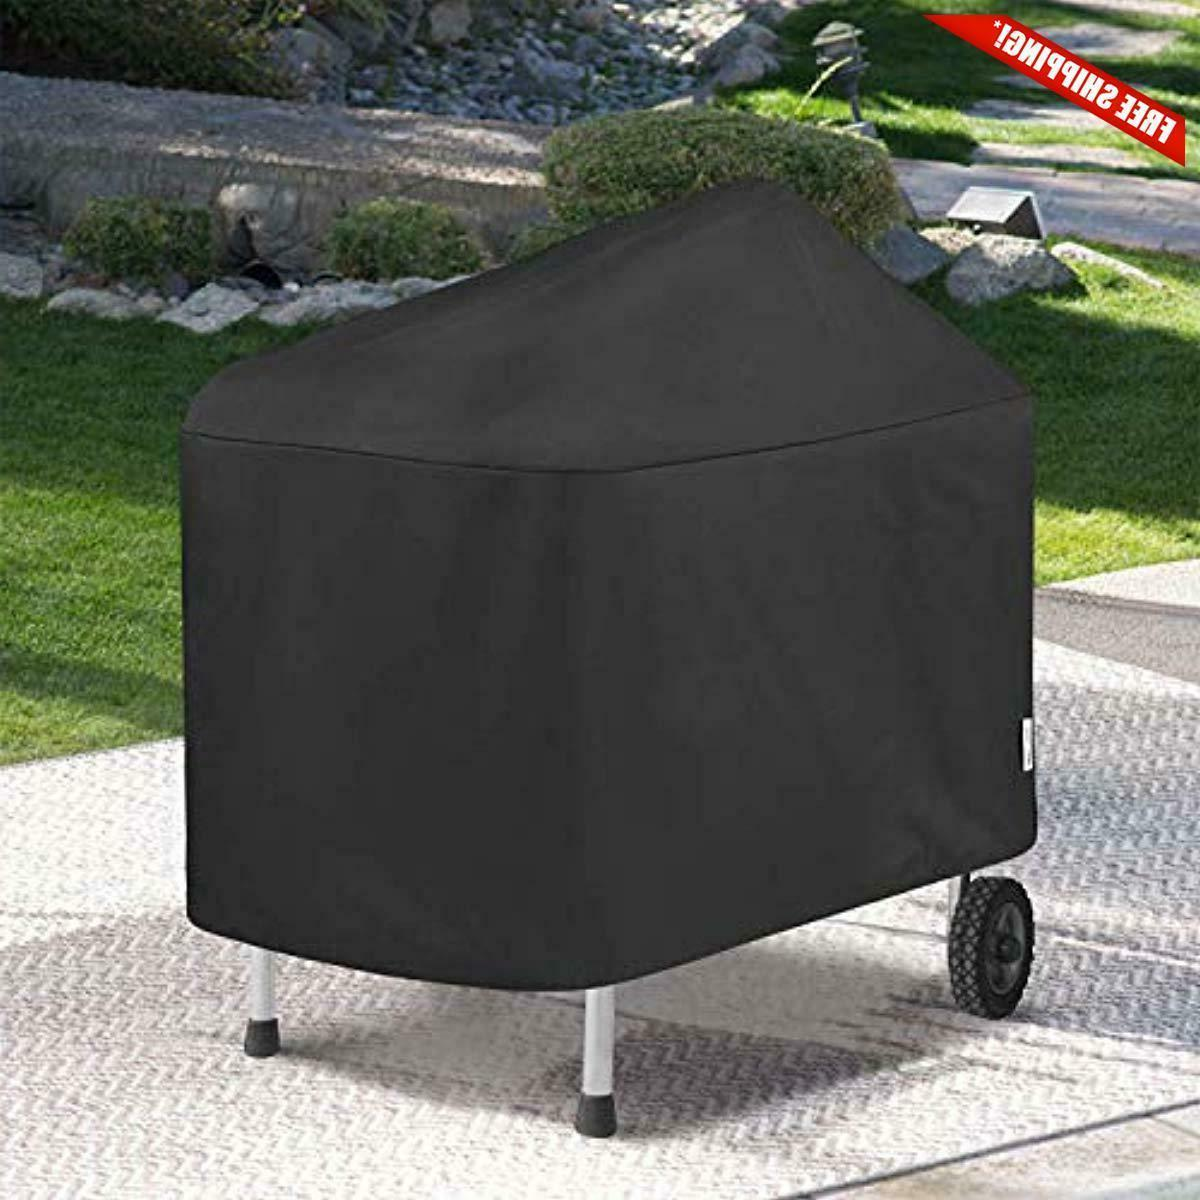 Unicook Duty Grill Cover Performer Premium and Deluxe